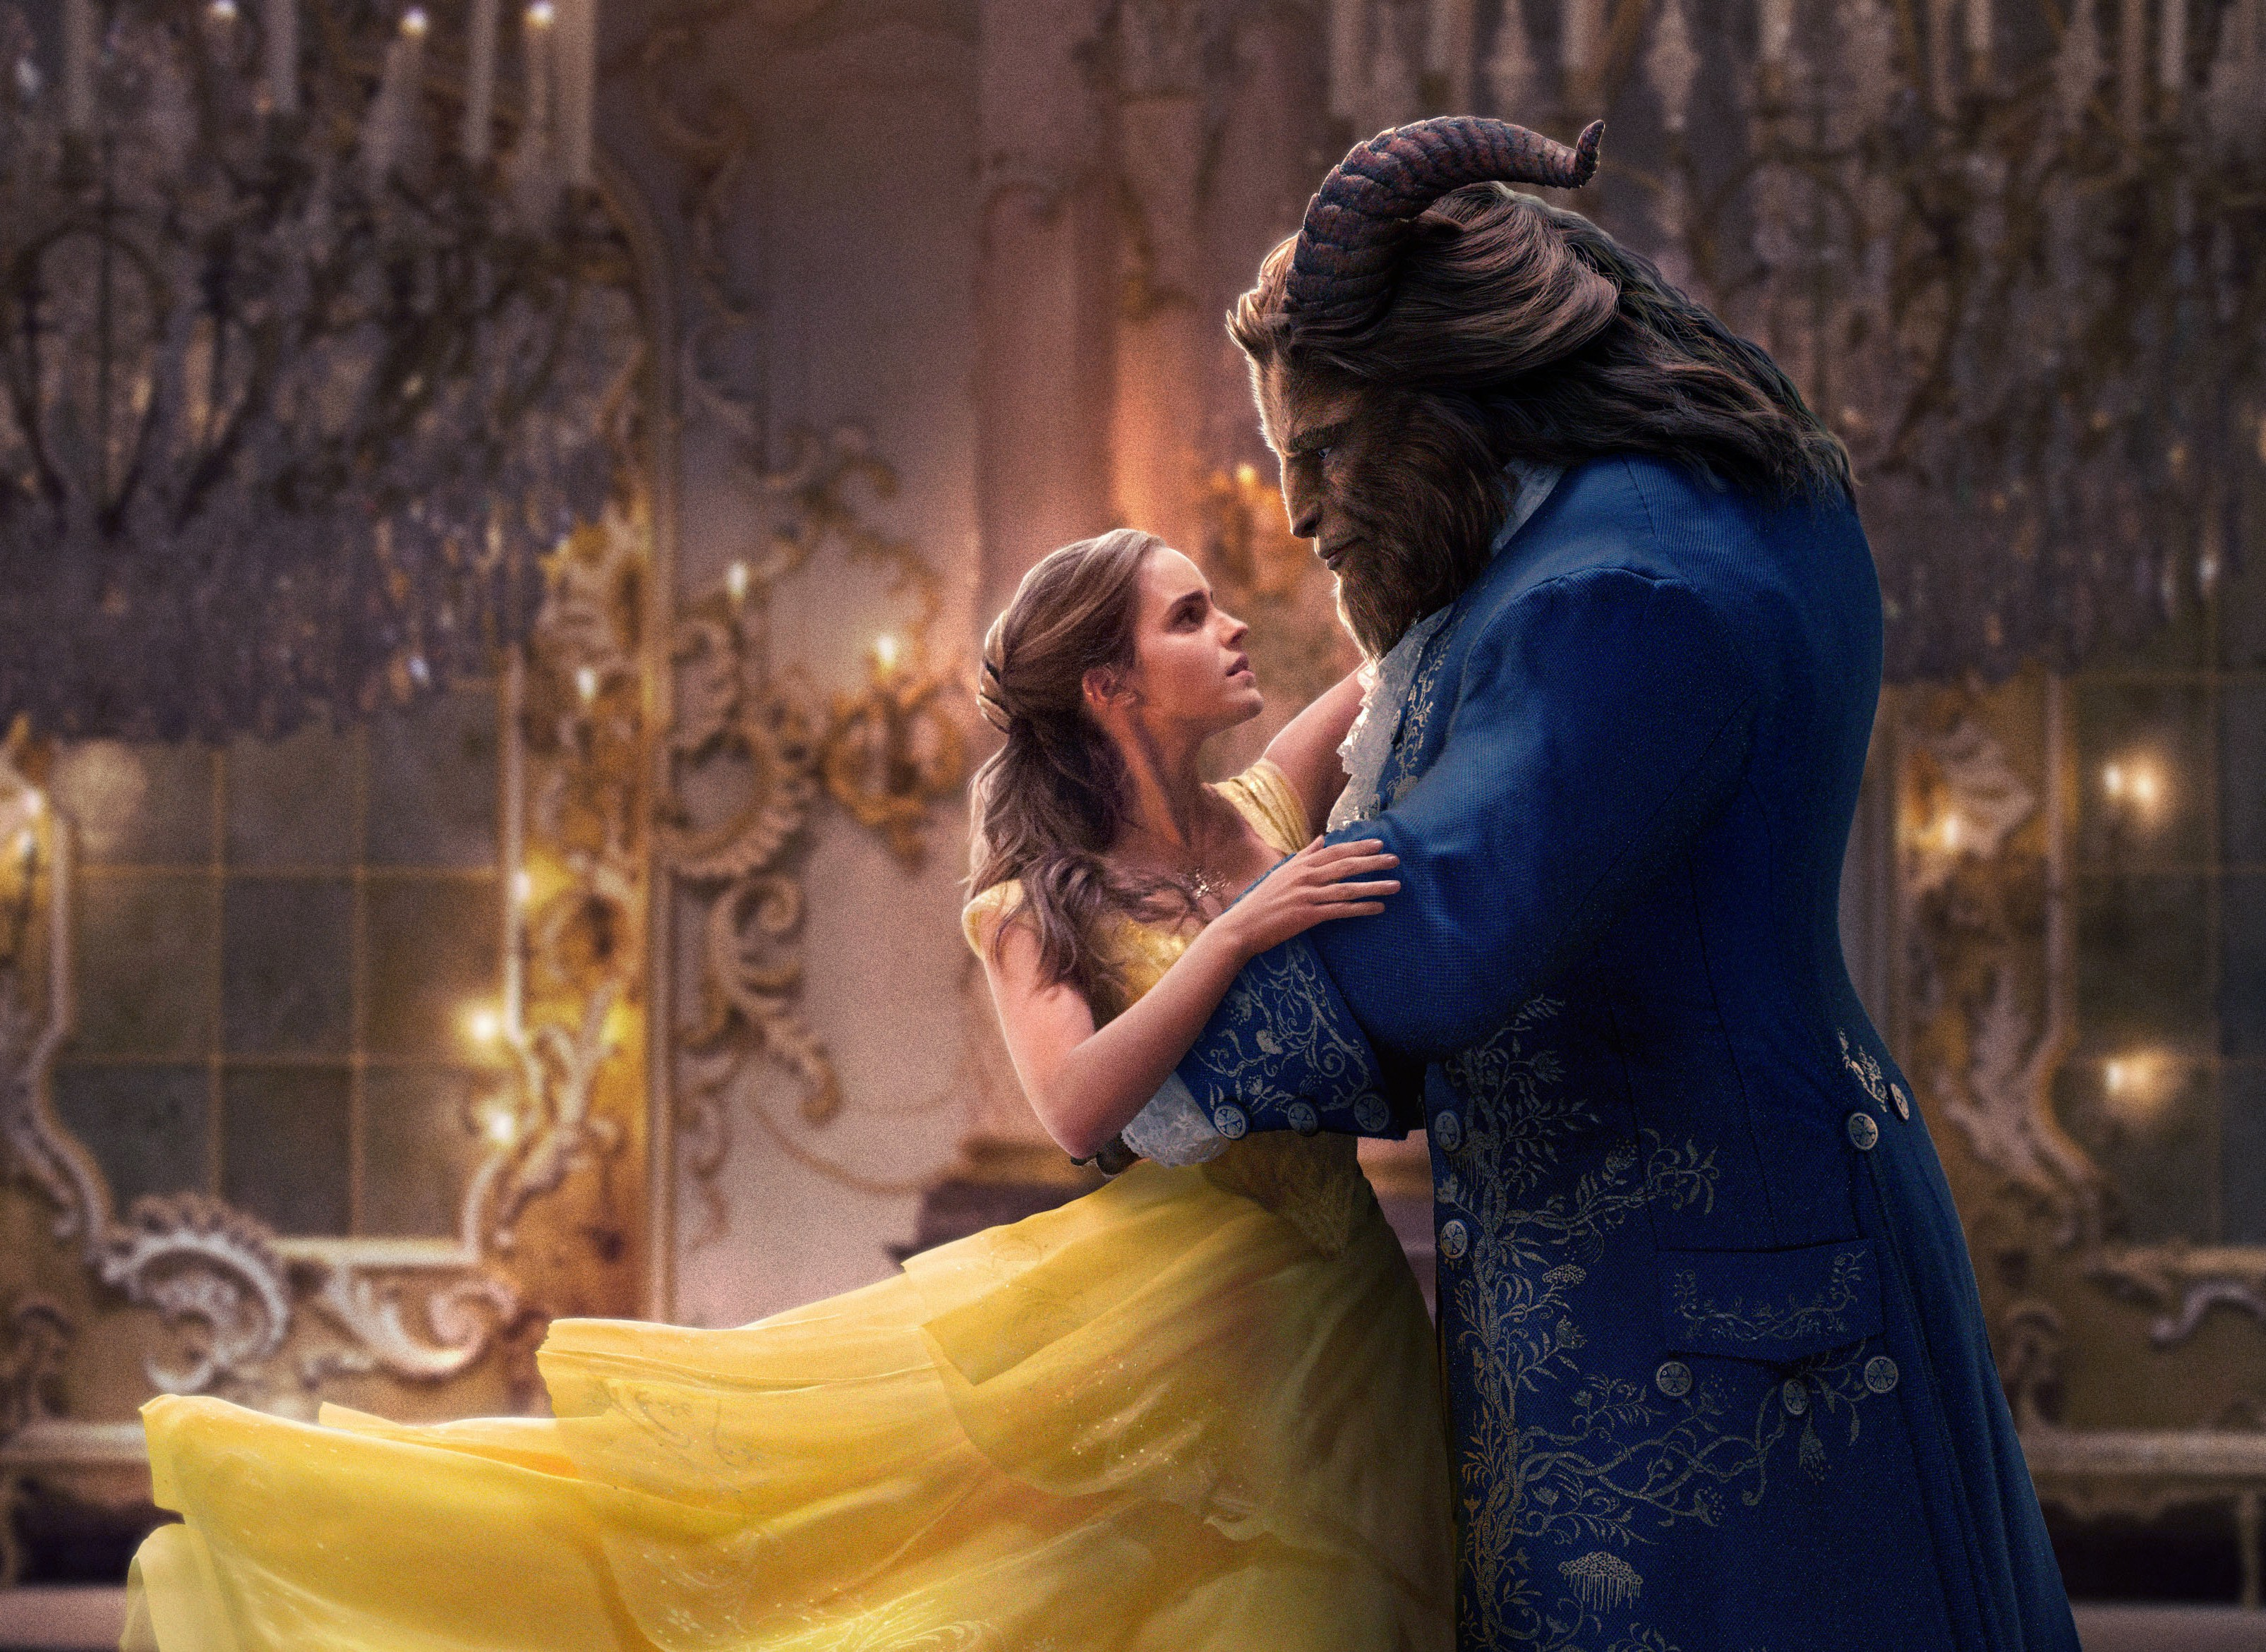 beauty and the beast, 2017, belle et la bête